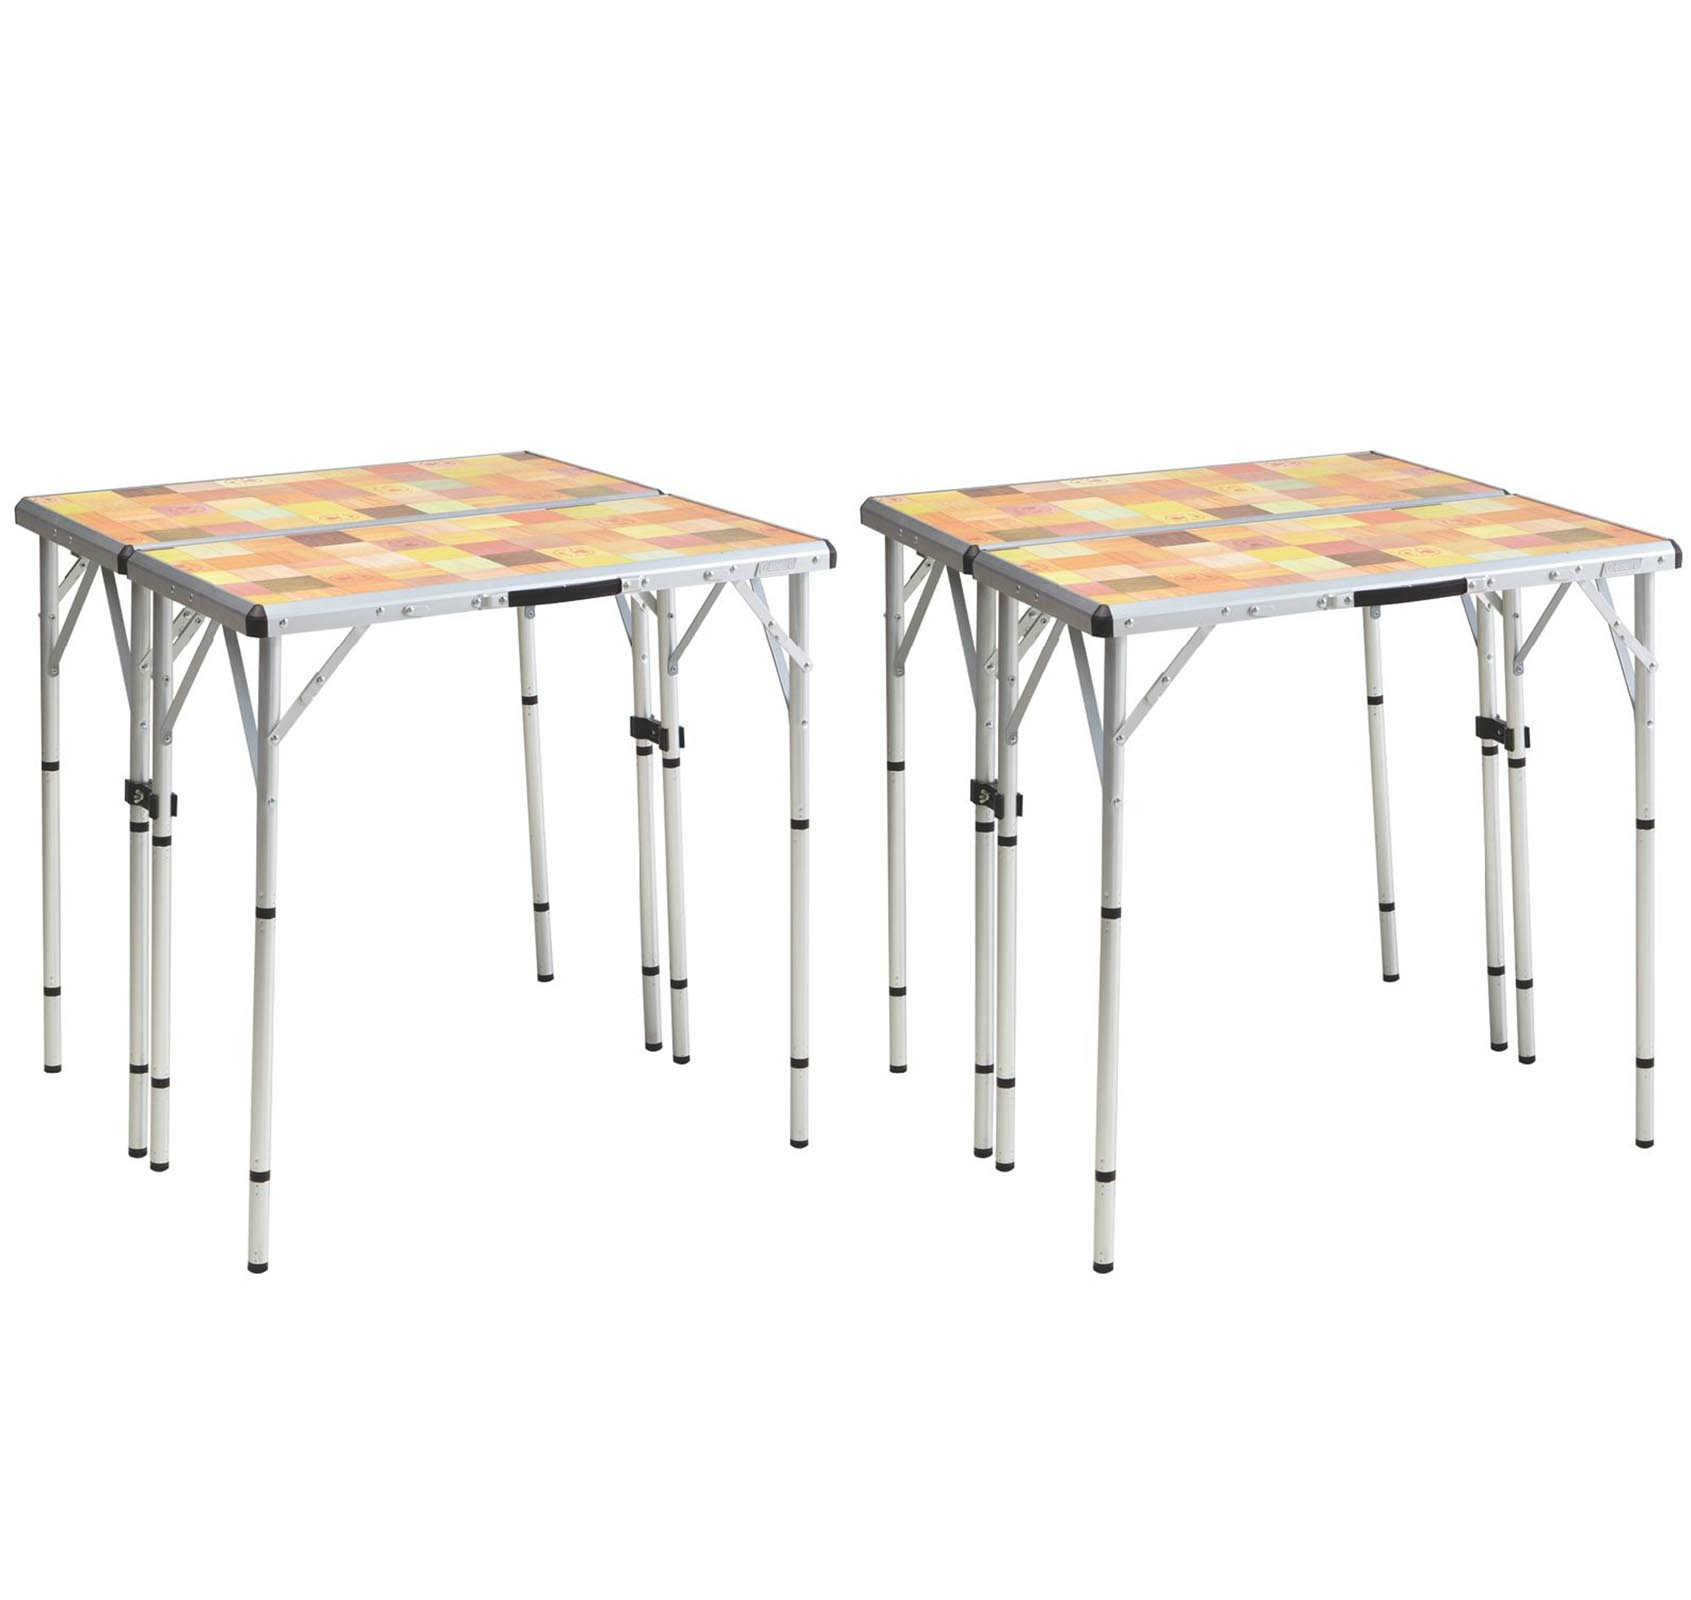 (2) COLEMAN Pack-Away 4-in-1 Portable Mosaic Camping Tailgating Picnic Tables by